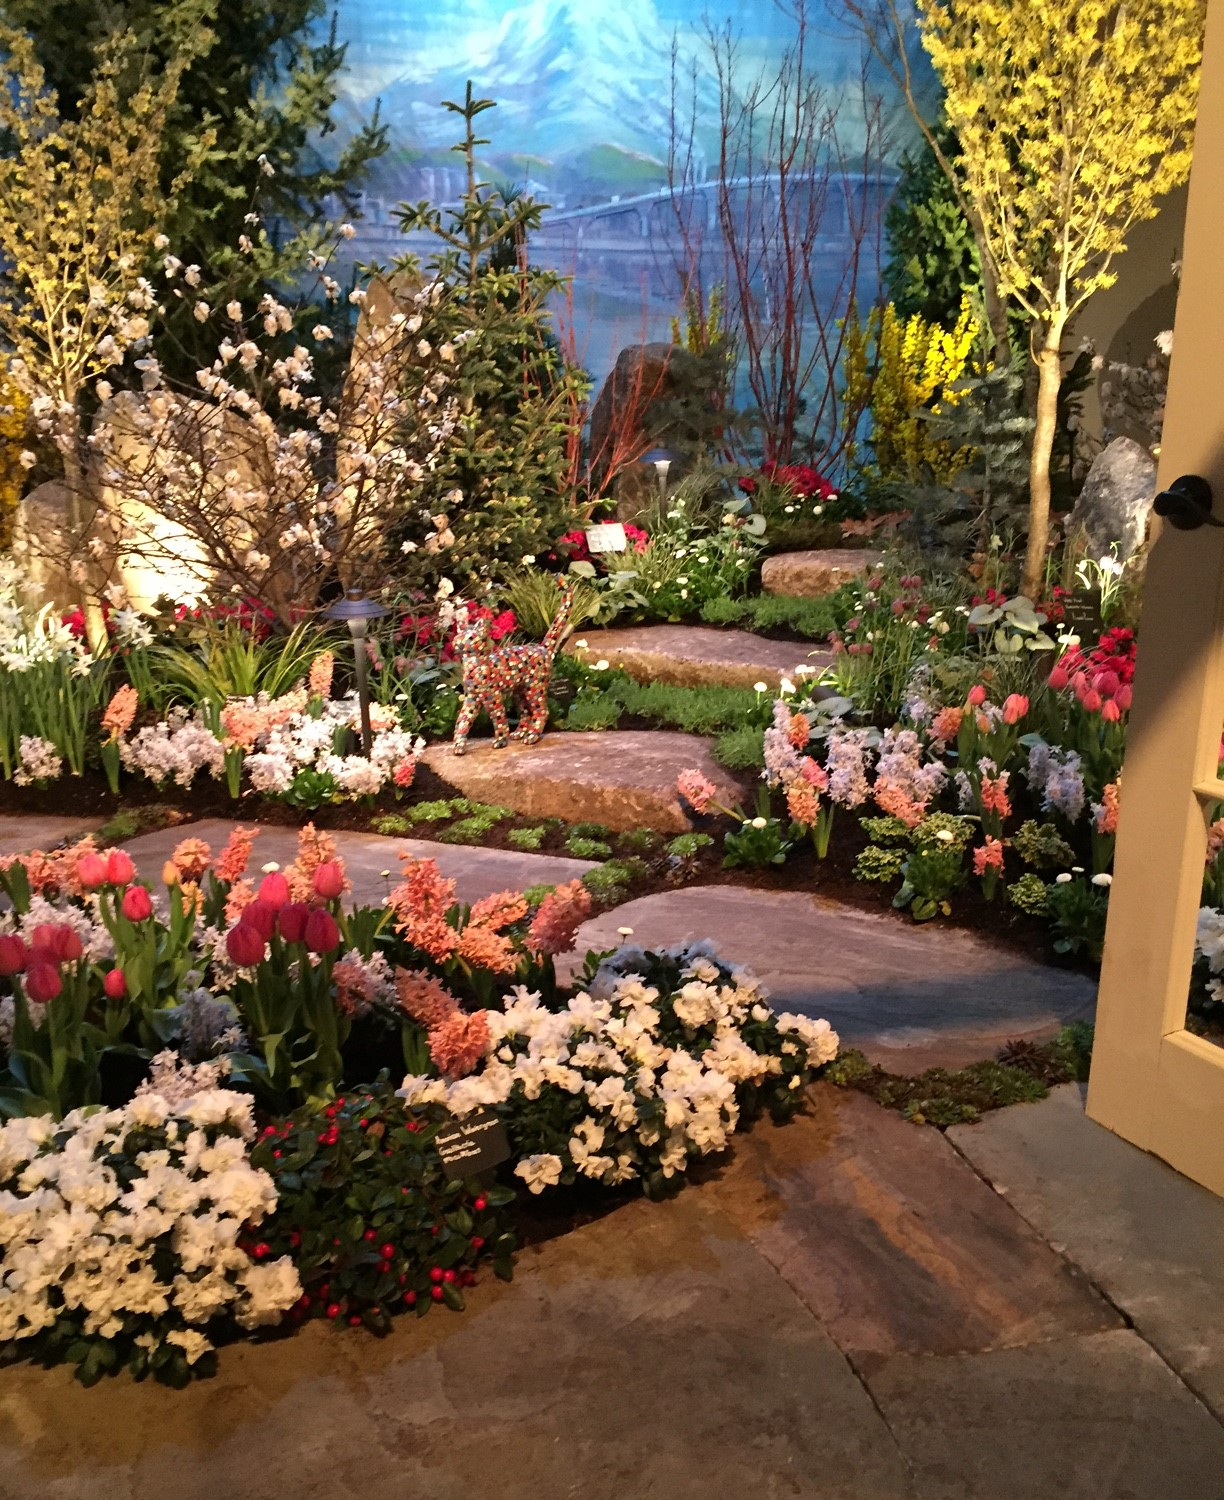 Marine Hills Garden Club: A few photos from the Flower and Garden Show